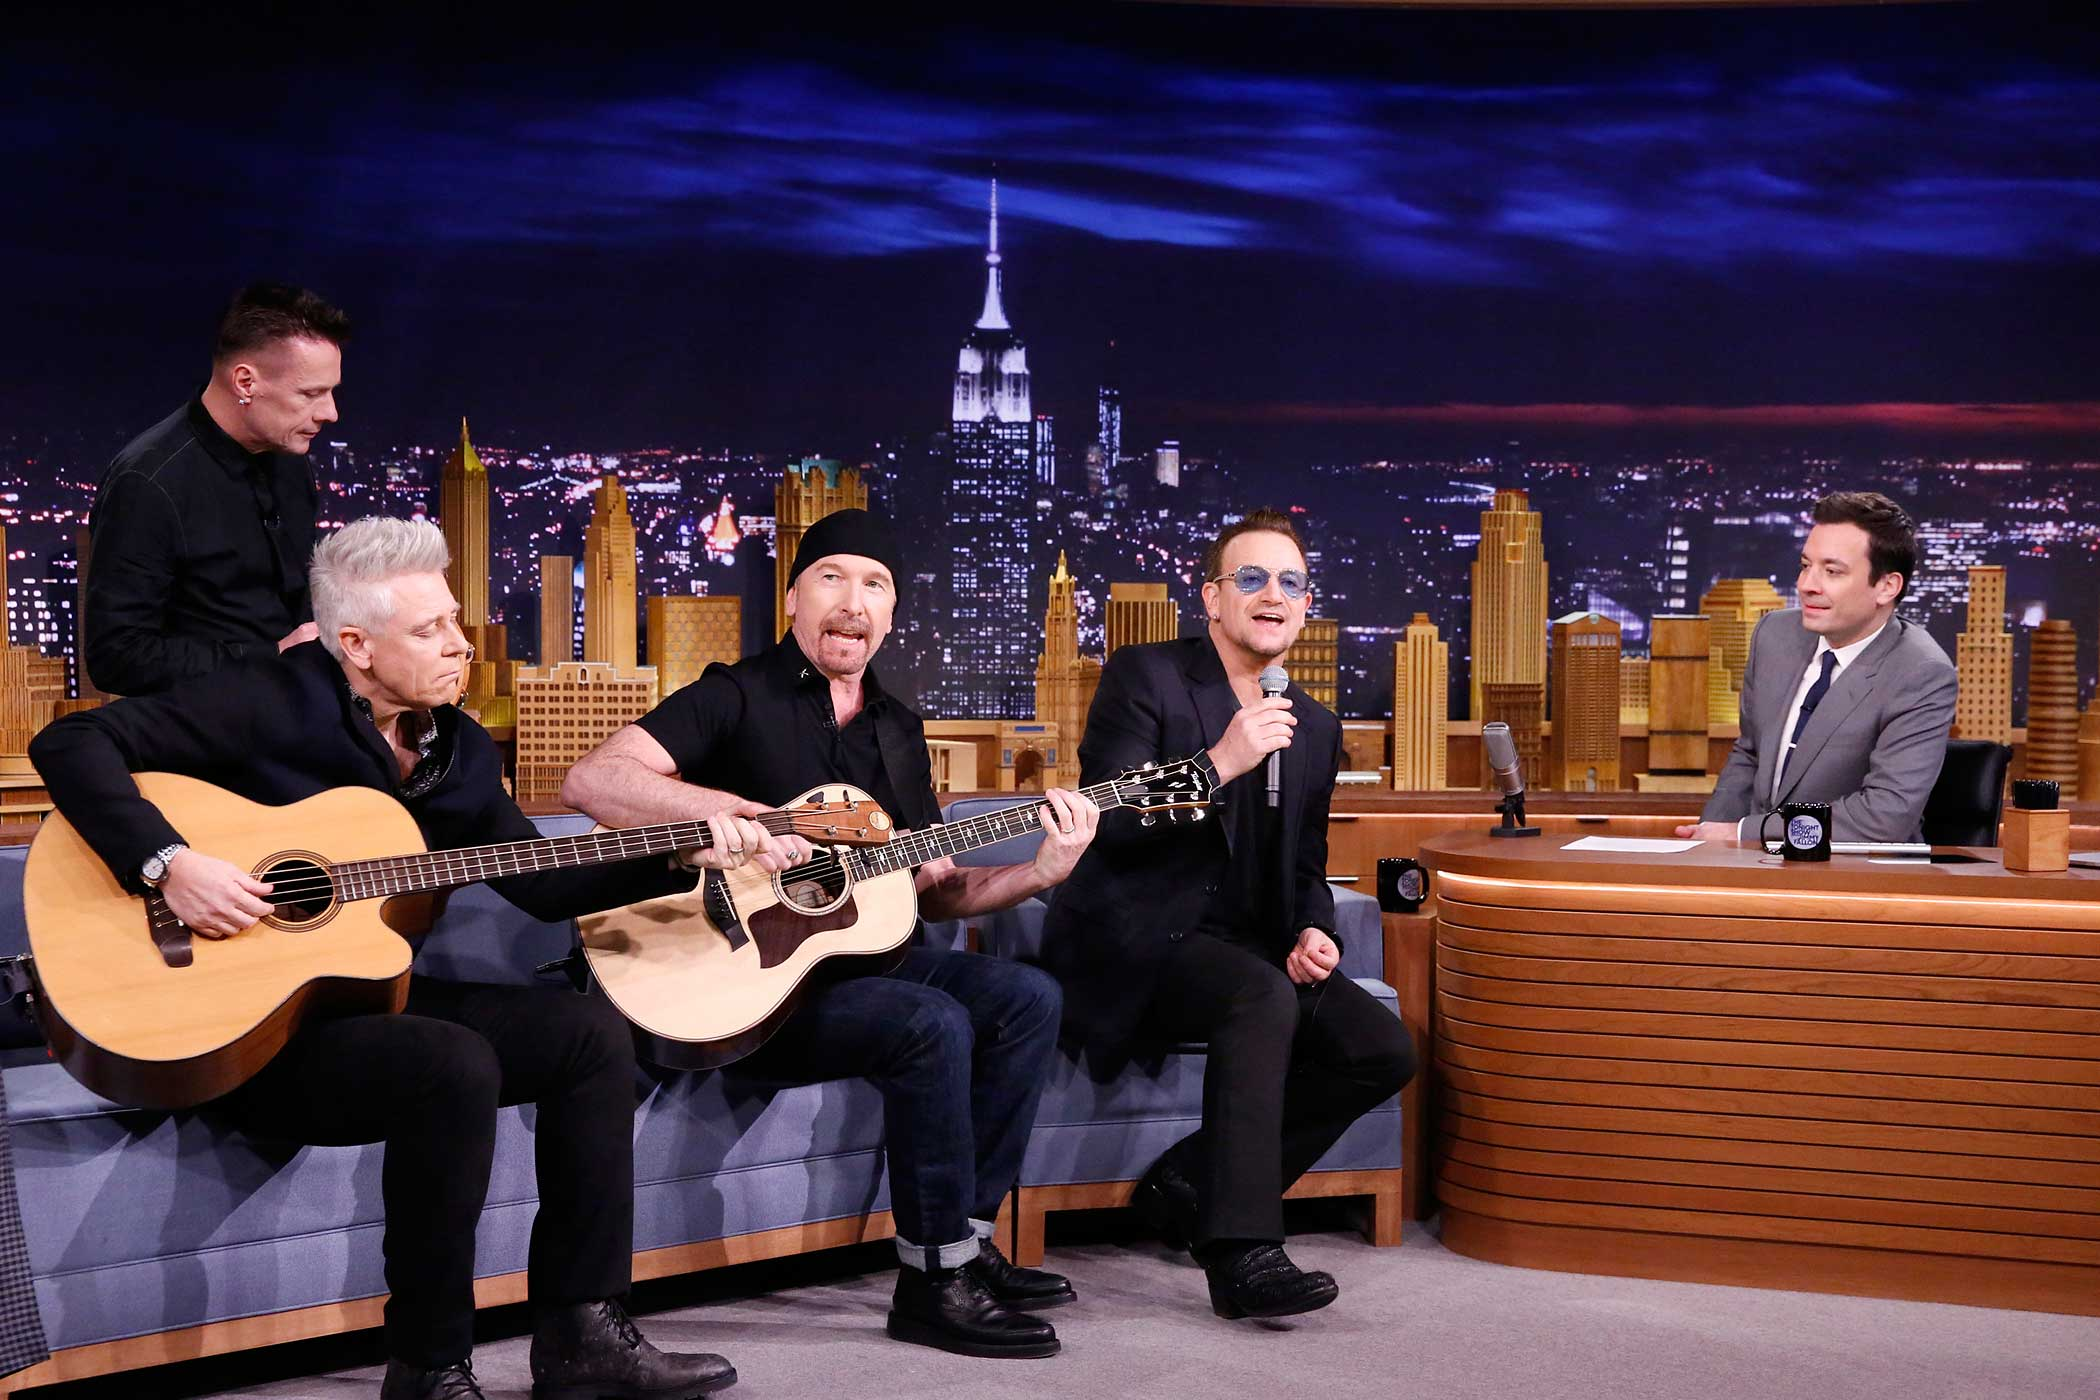 Larry Mullen, Jr., Adam Clayton, The Edge and Bono of musical guest U2 perform on the Tonight Show Starring Jimmy Fallon on February 17, 2014.